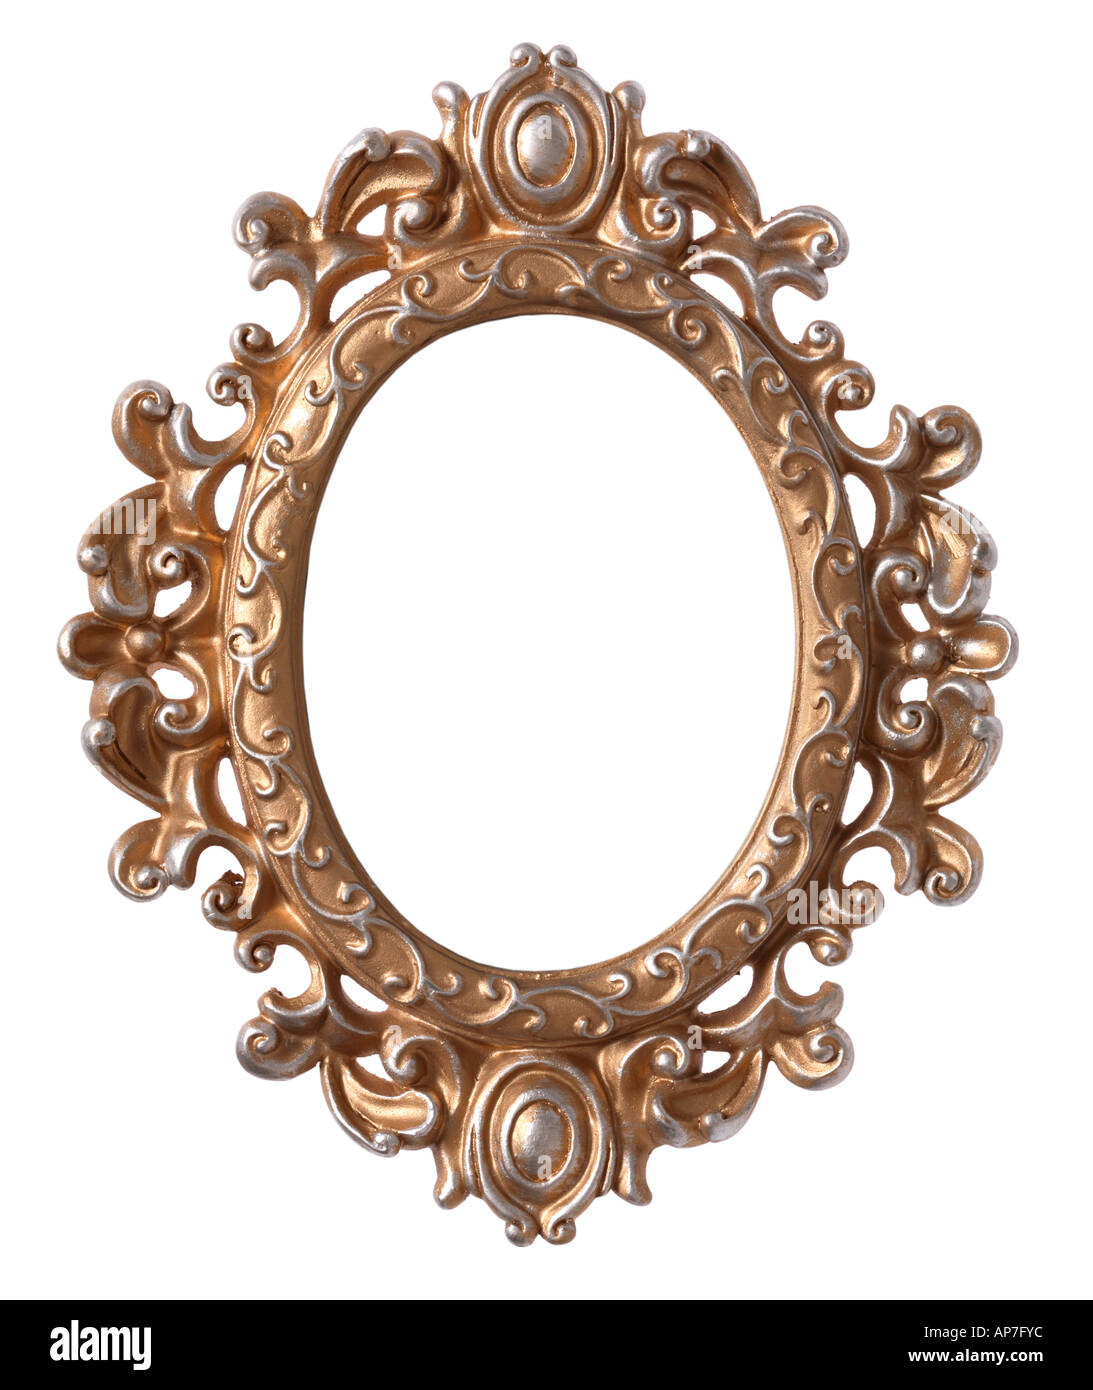 Ornate Oval Picture Frame Stock Photo Alamy